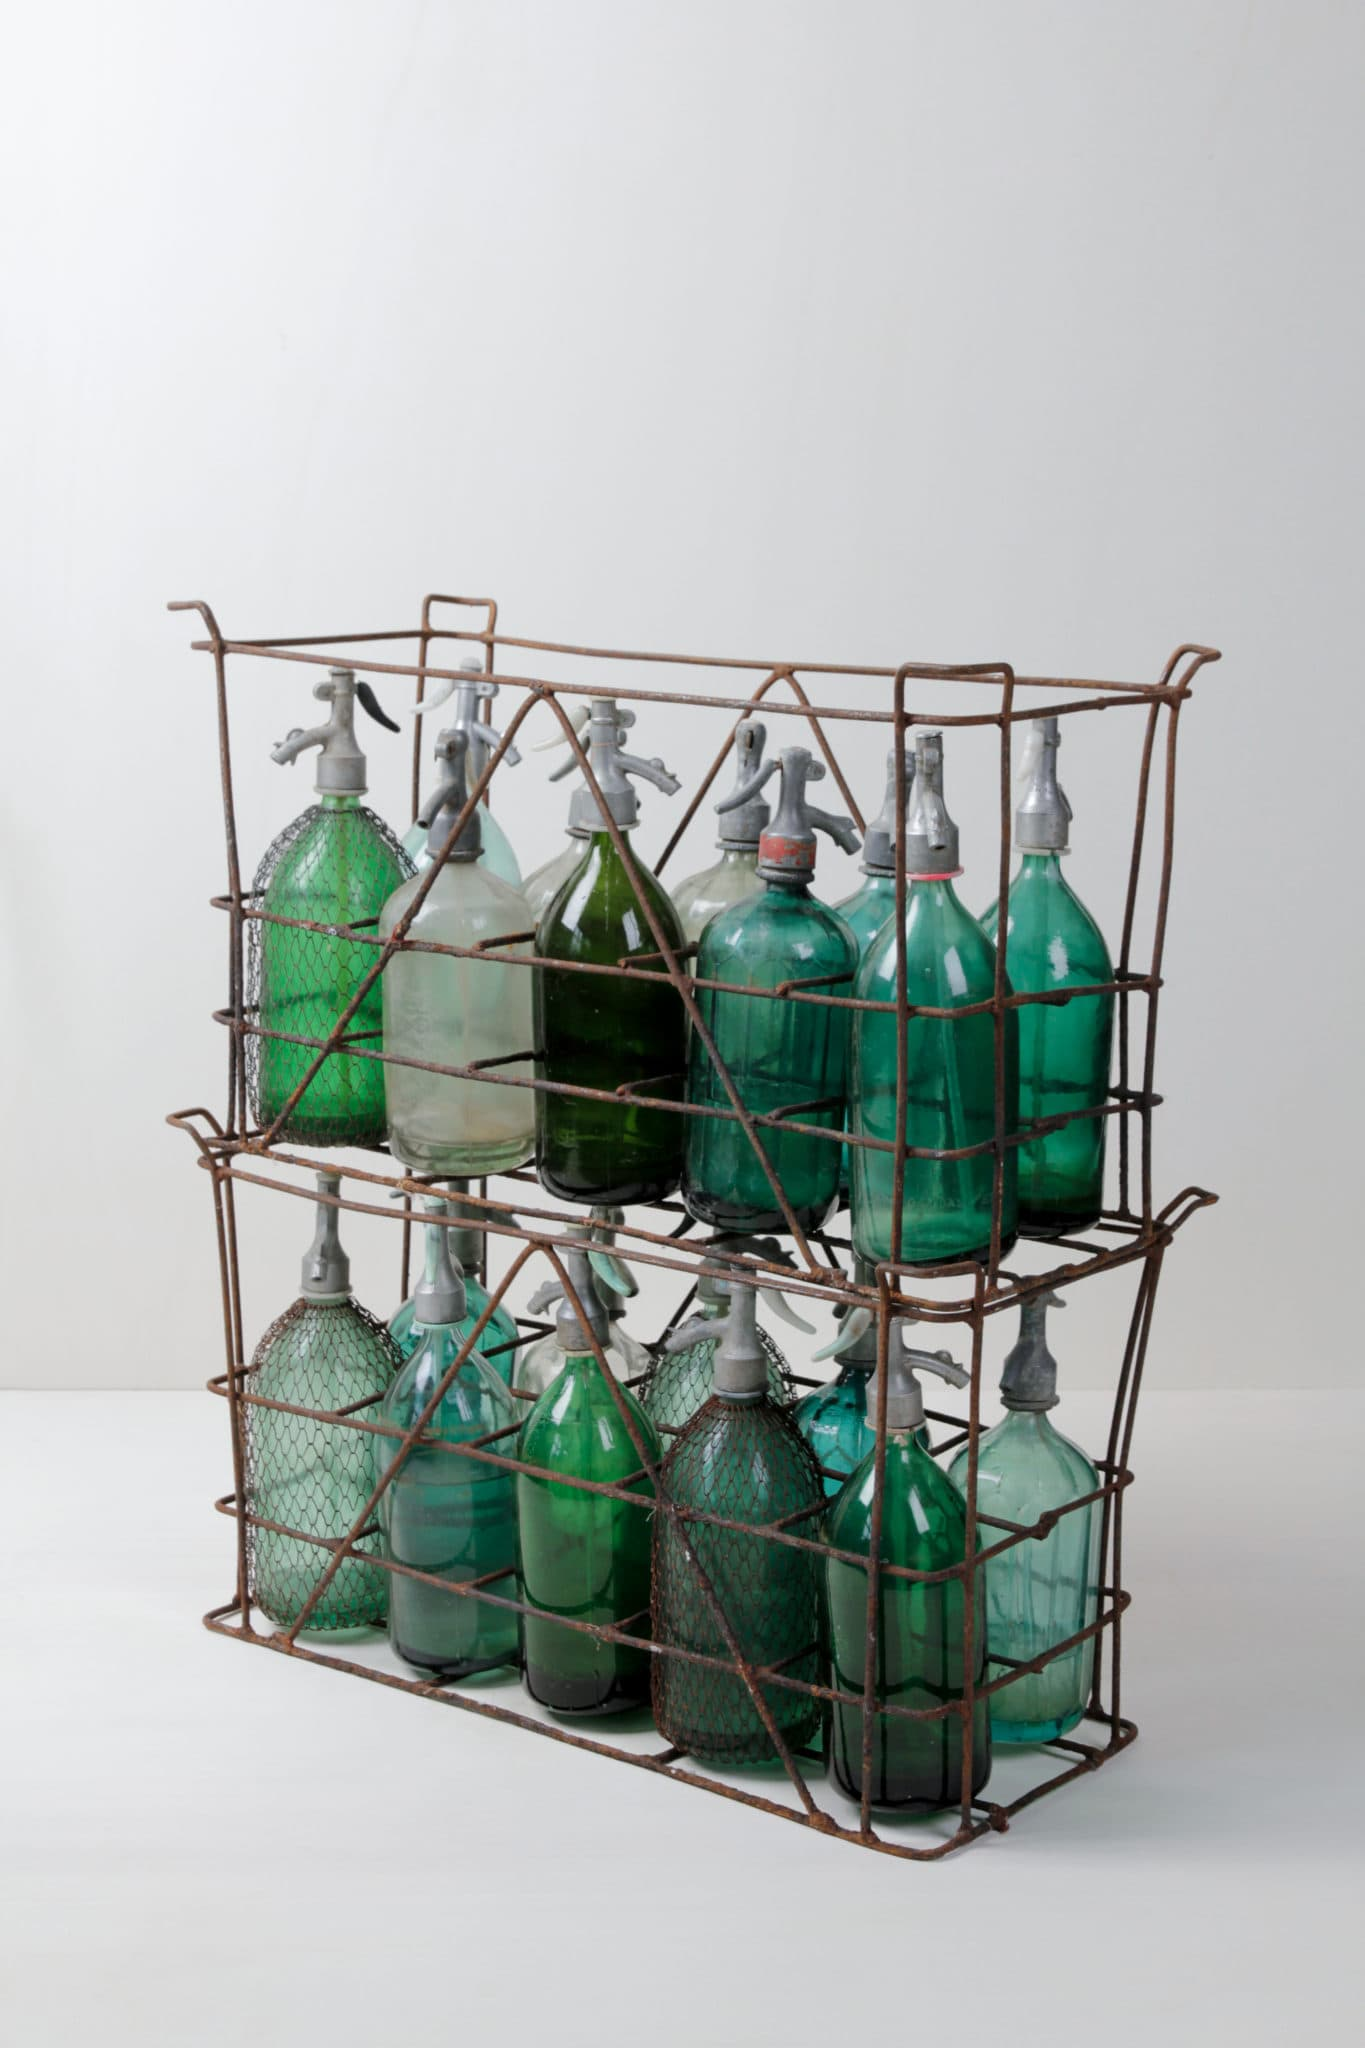 Soda Crate Tulio | Wonderful vintage soda bottles in their original metal crate. Impressive radiant colors of the bottles, which are also available separately. | gotvintage Rental & Event Design